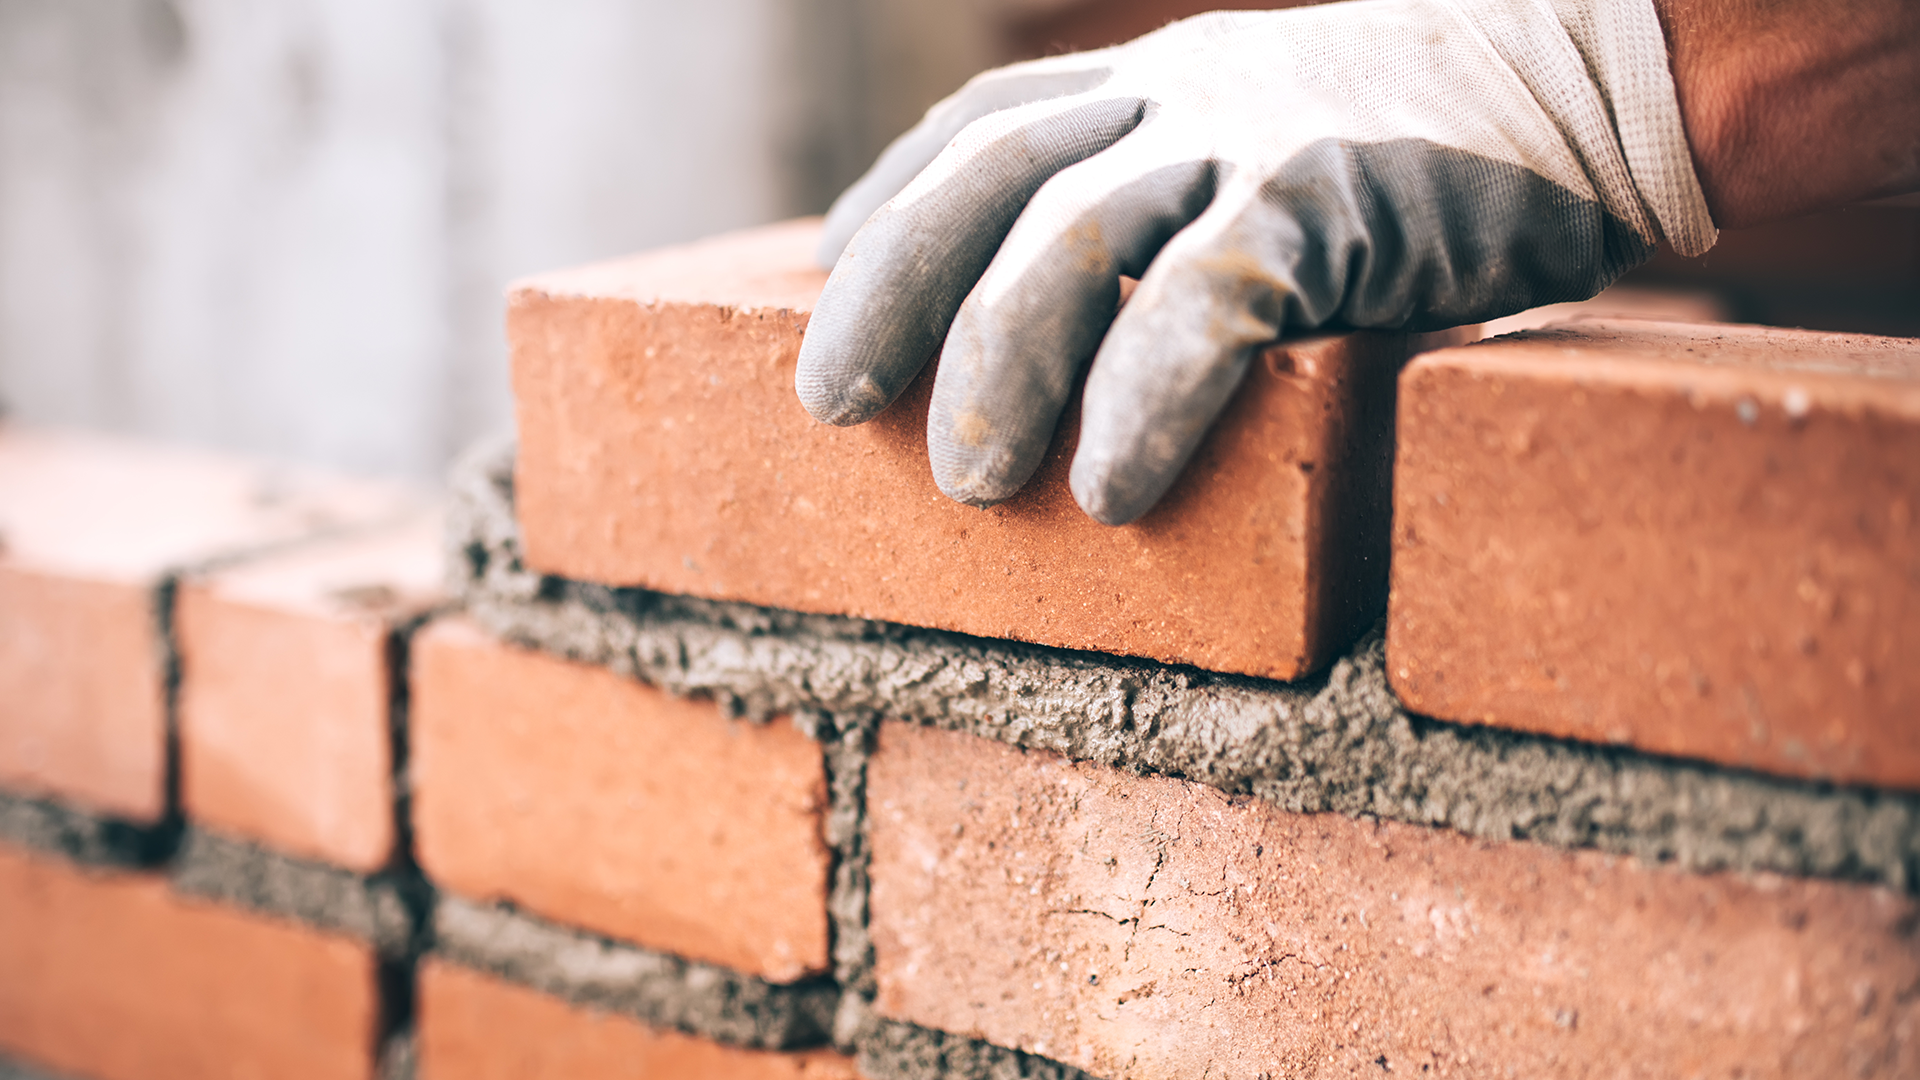 Close up of industrial bricklayer installing bricks on construction site